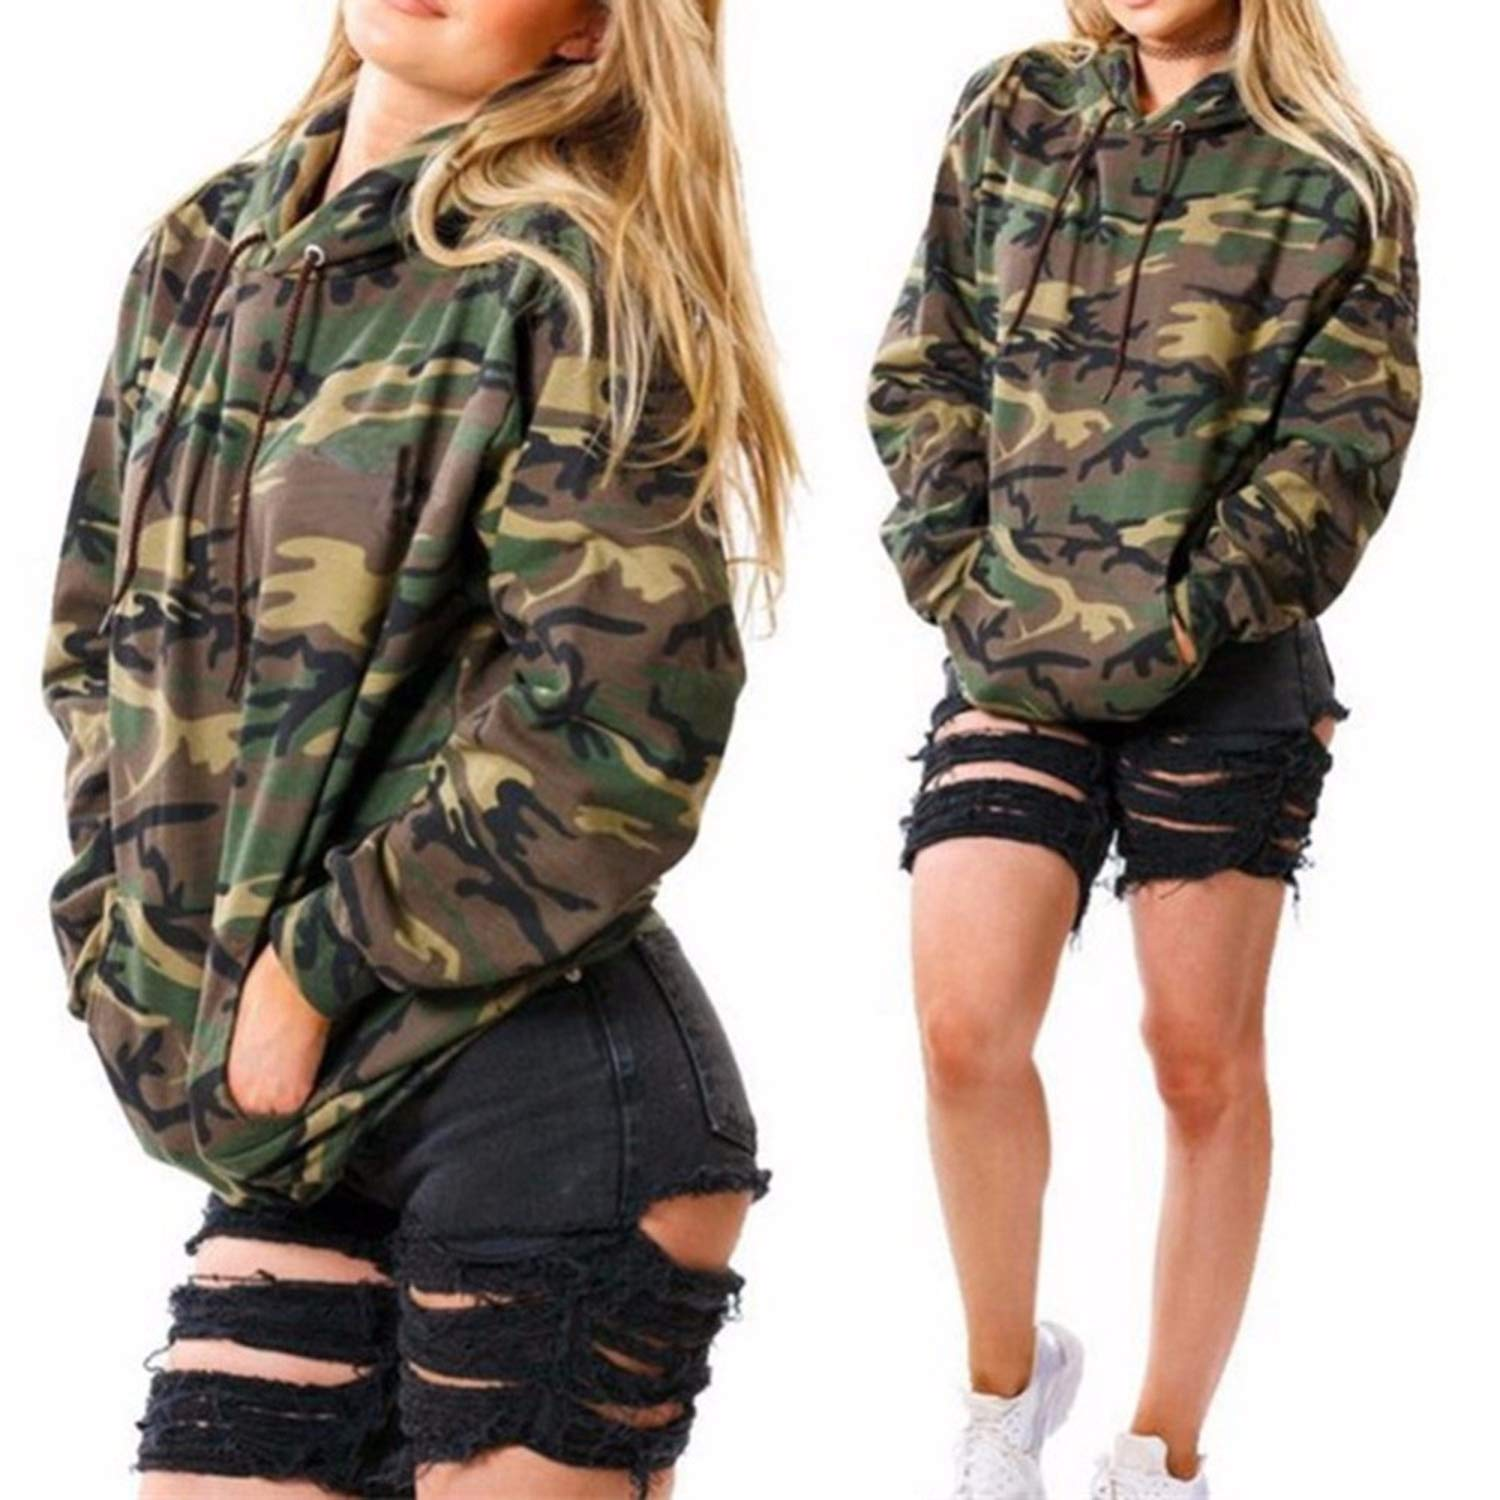 Amazon.com: Little Happiness- Fashion Camouflage Women Sweatshirt Army Hoodies Pullover Womens Hoodies Female Sweatshirts: Clothing